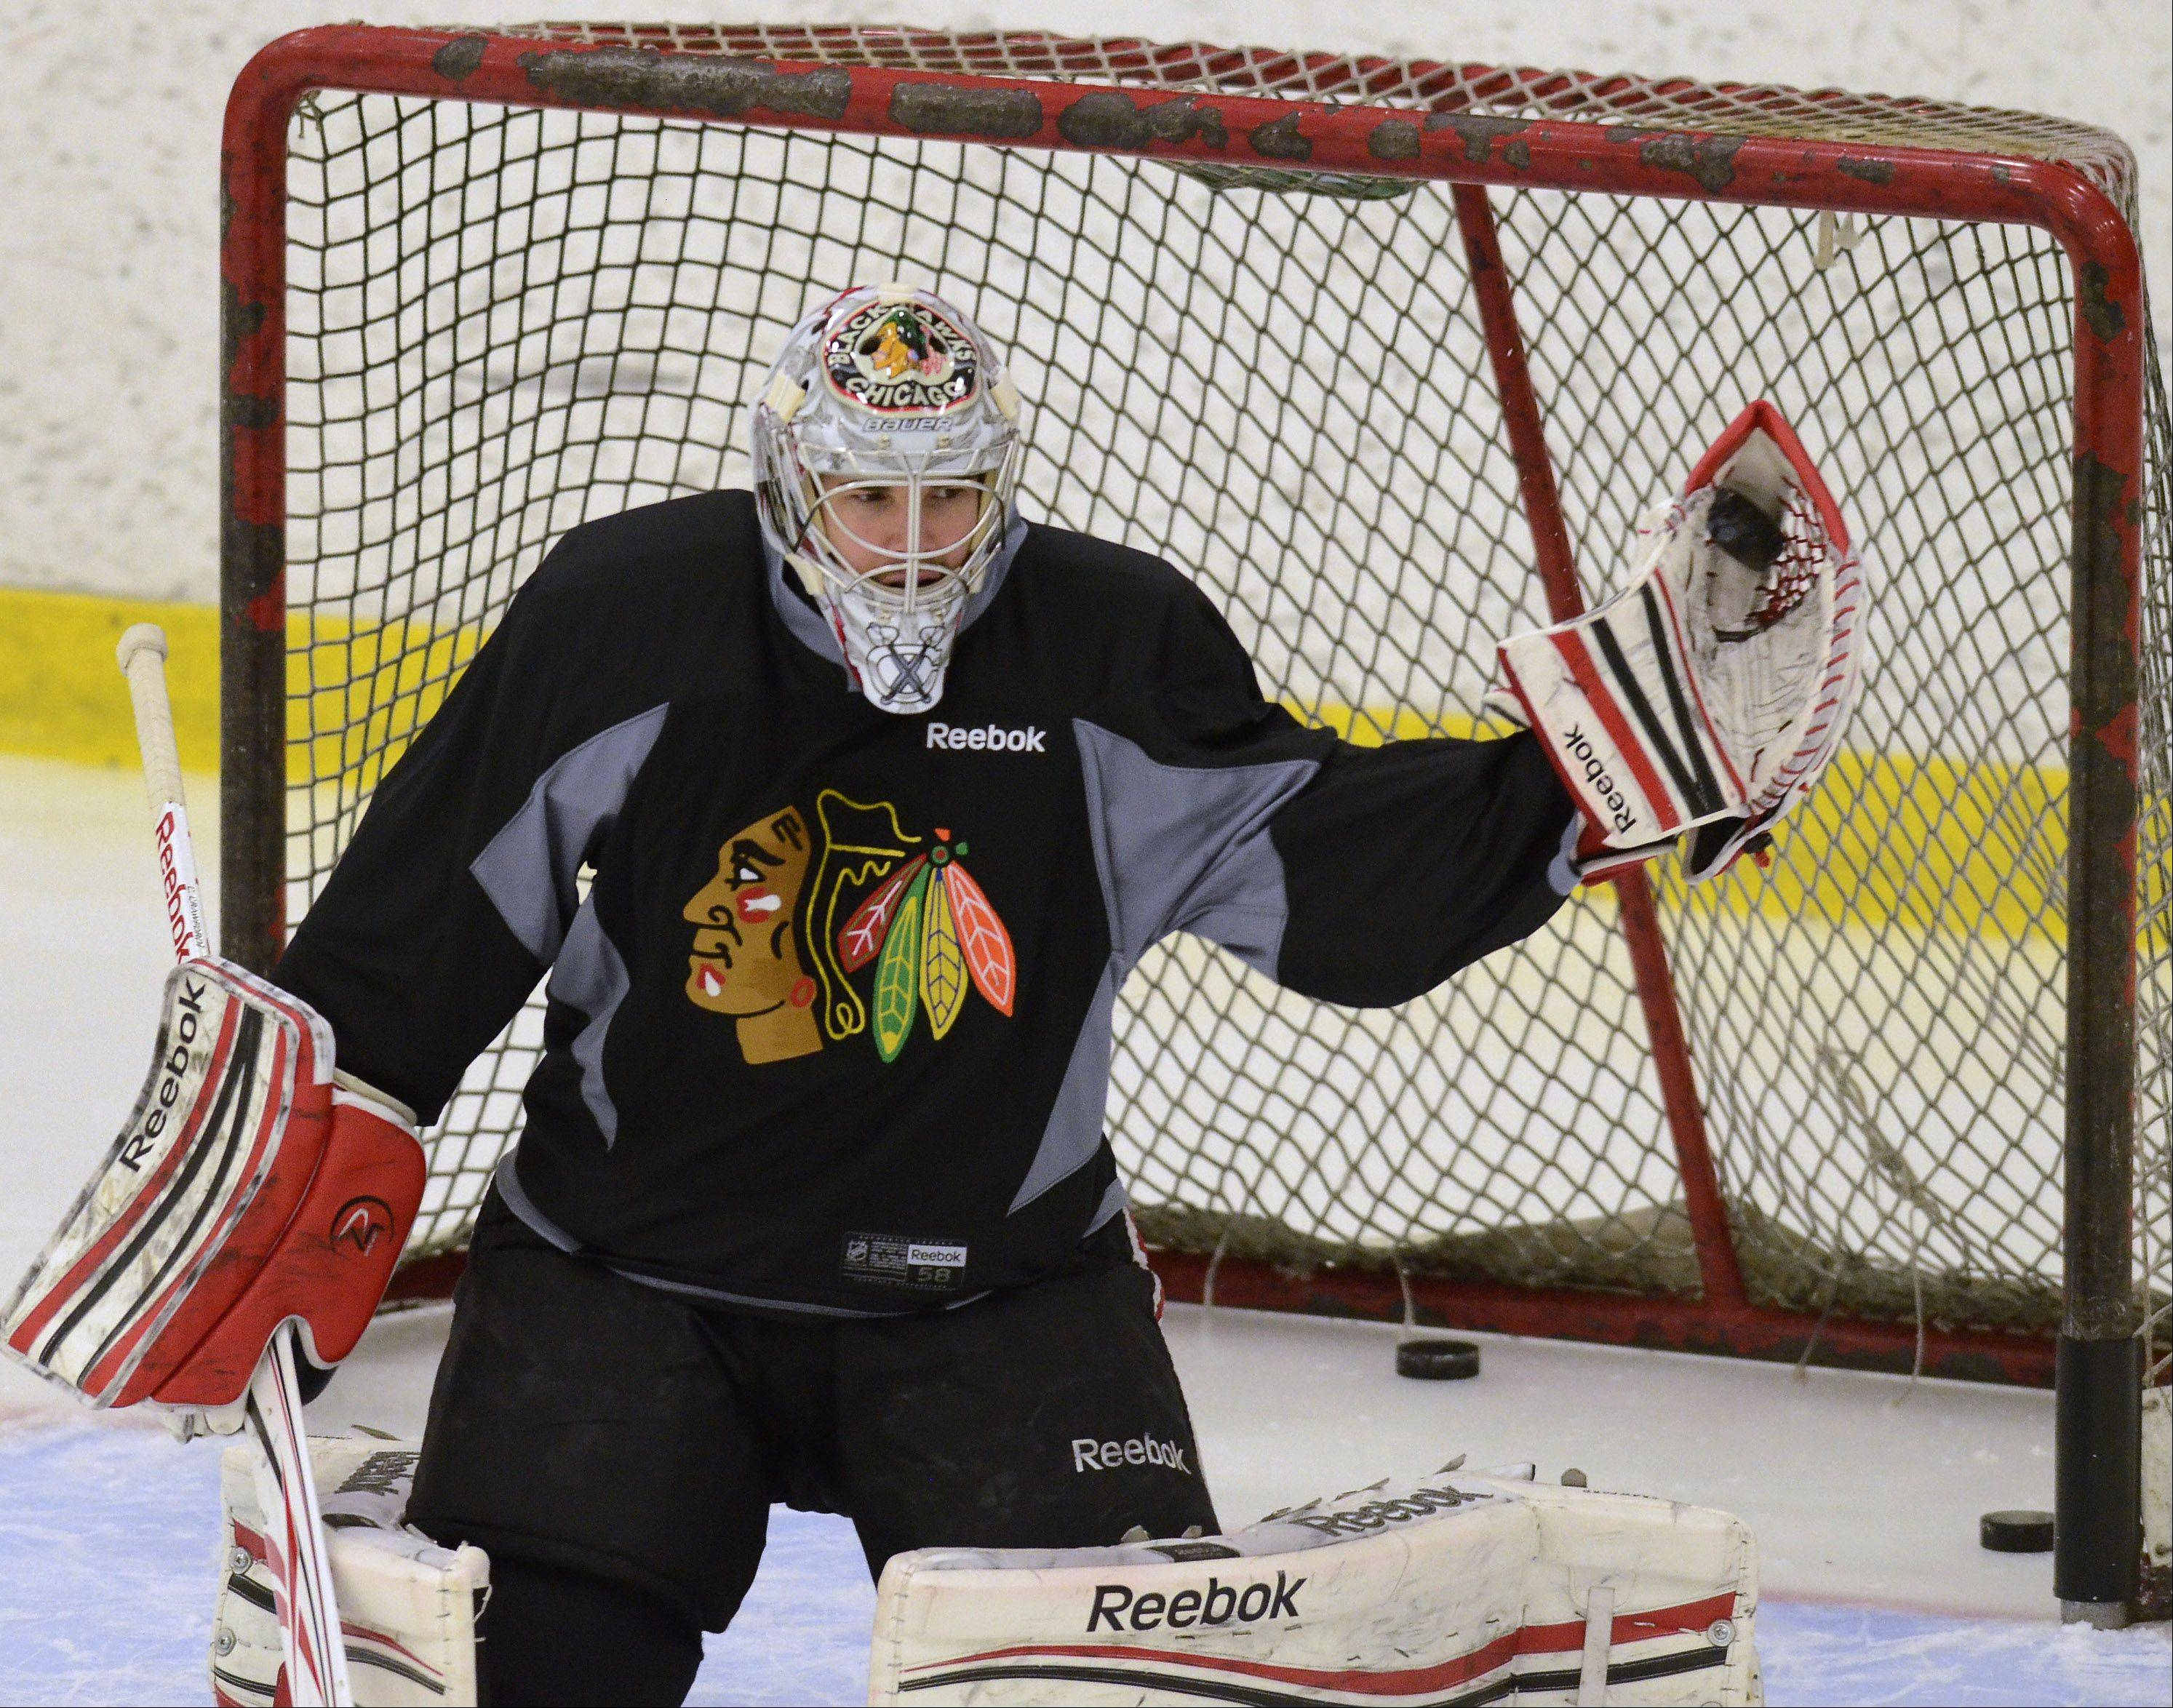 Goalie Corey Crawford said, �I feel like I kind of need to redeem myself a little bit,� referring to some shaky moments in the 2012 playoffs against the Phoenix Coyotes.